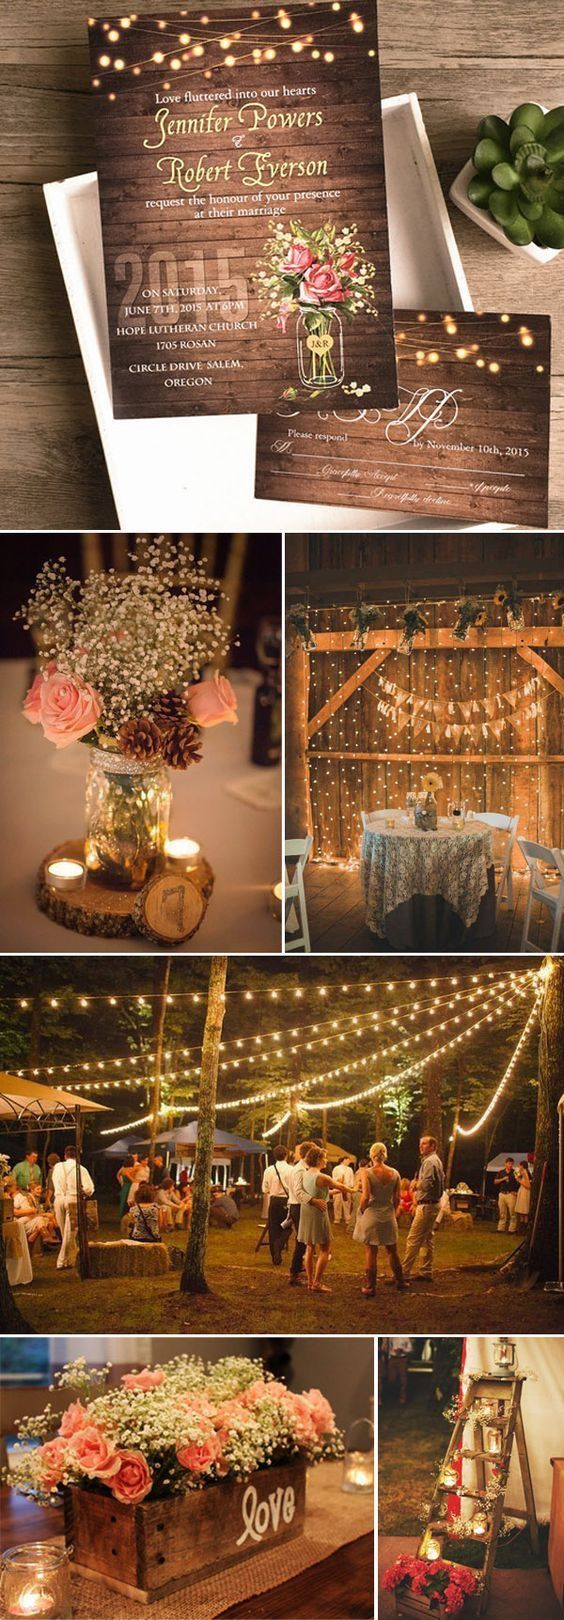 Pin by hanna thompson on western pinterest wedding weddings and this picture encompasses so much of how i picture my wedding junglespirit Image collections